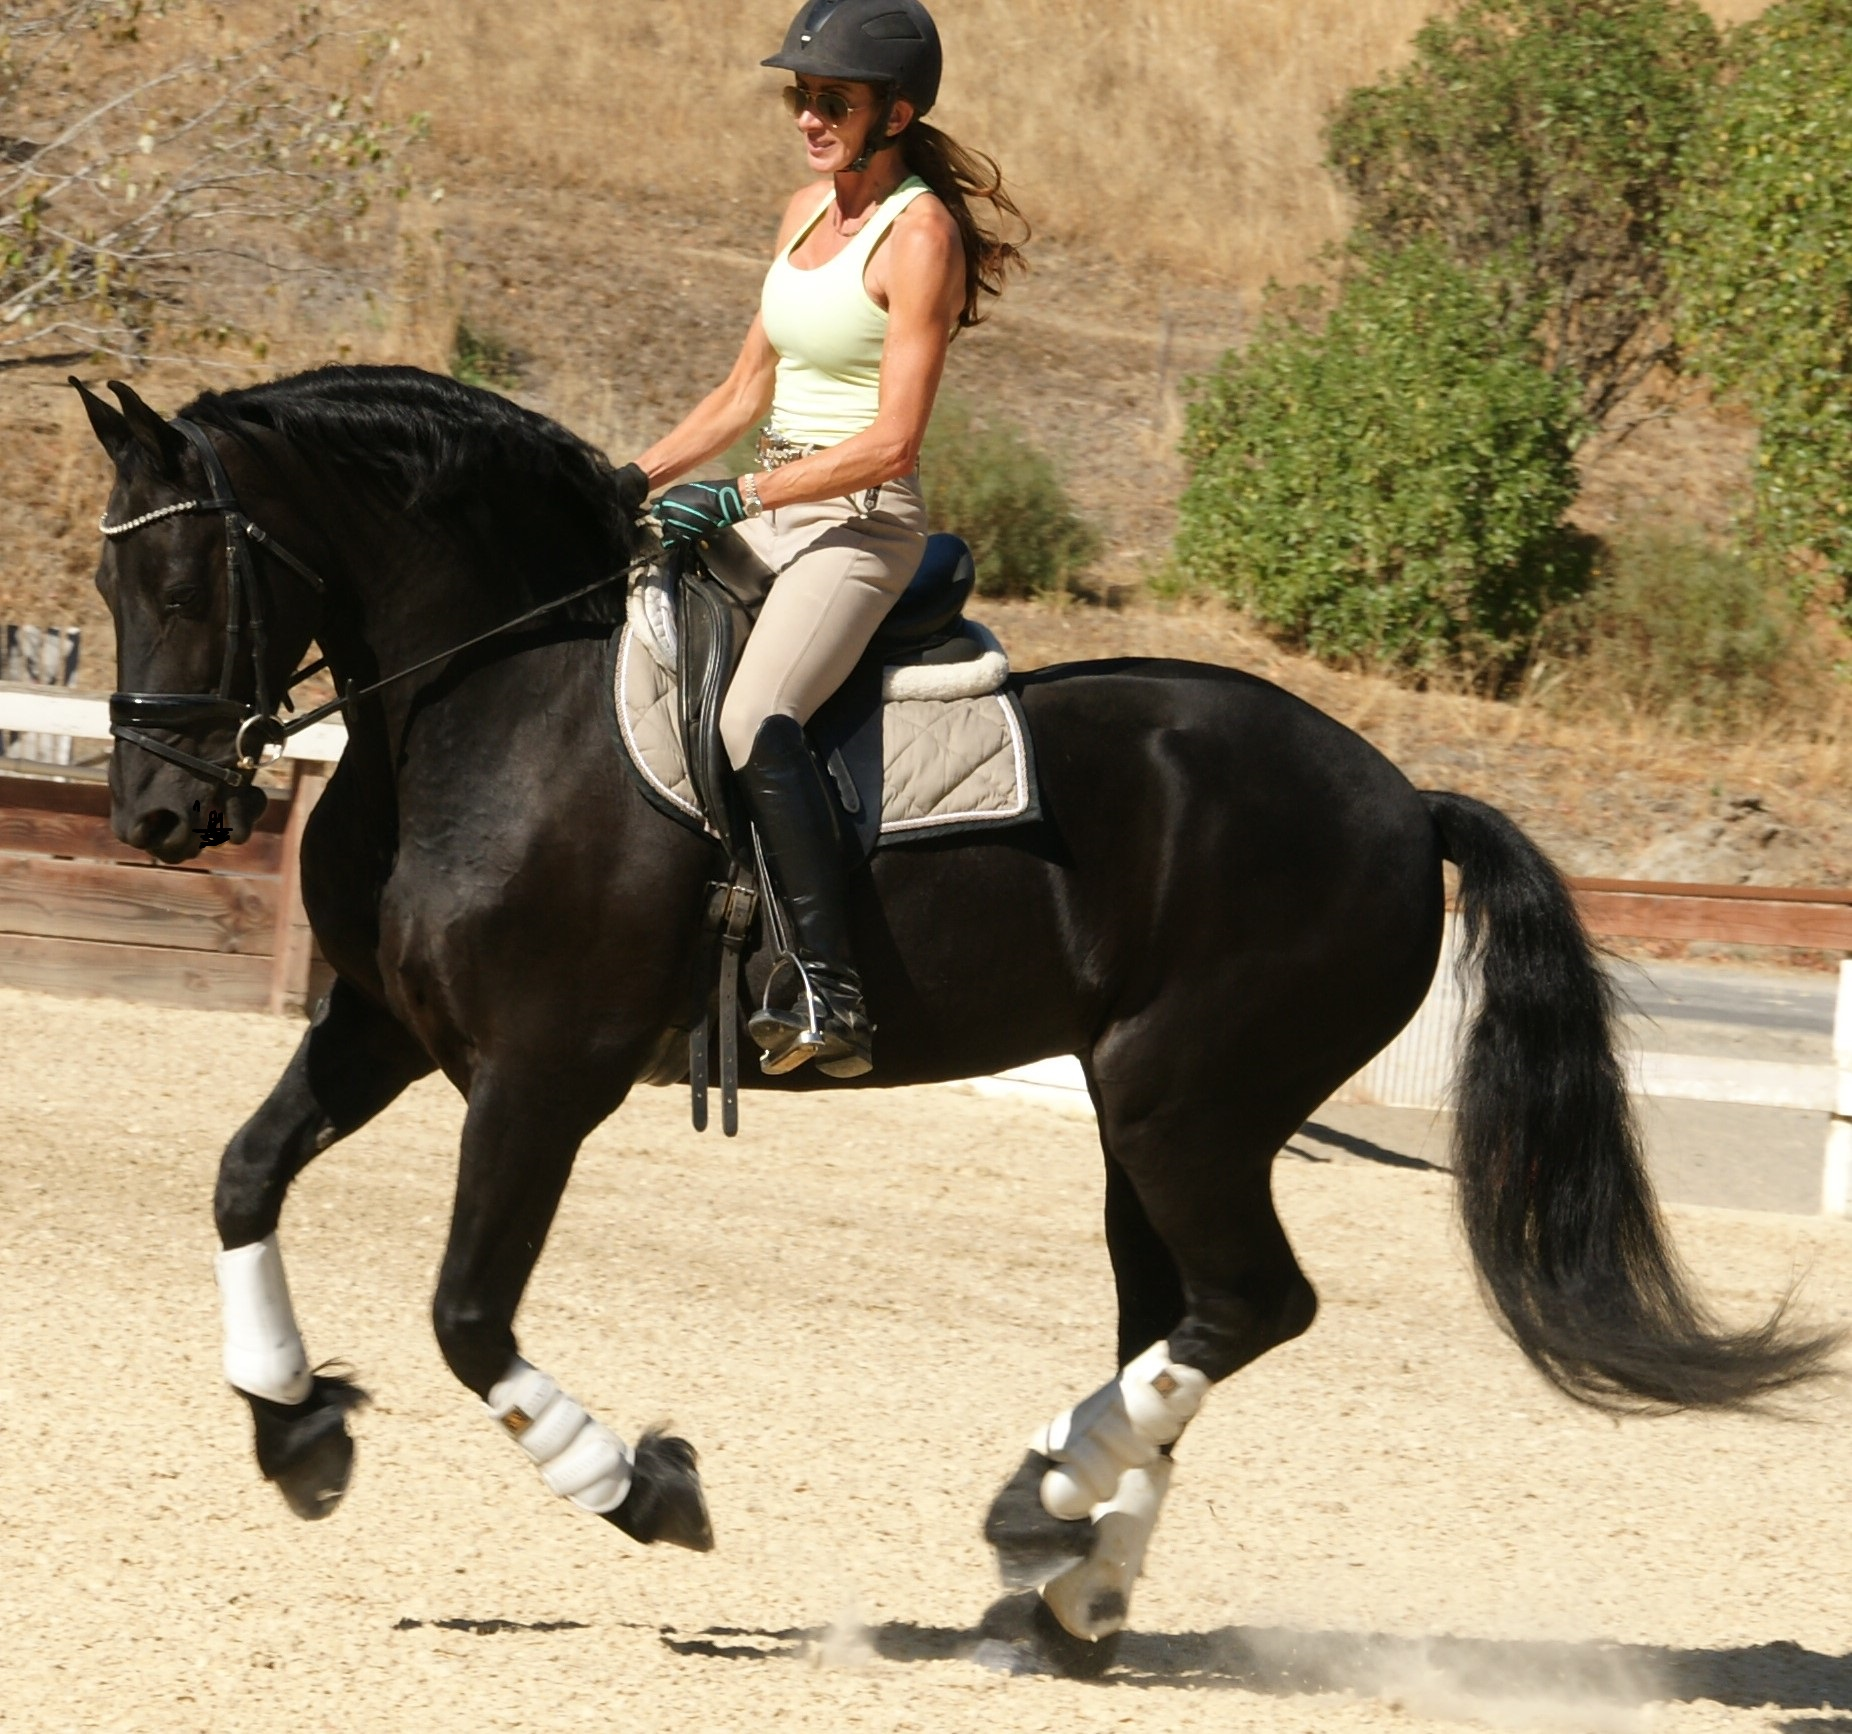 New price 6 yr old friesian gelding ideal family pleasure trail dressage horse play video 27 900 gelding black none age 6 16 0h 1200 lbs fhana